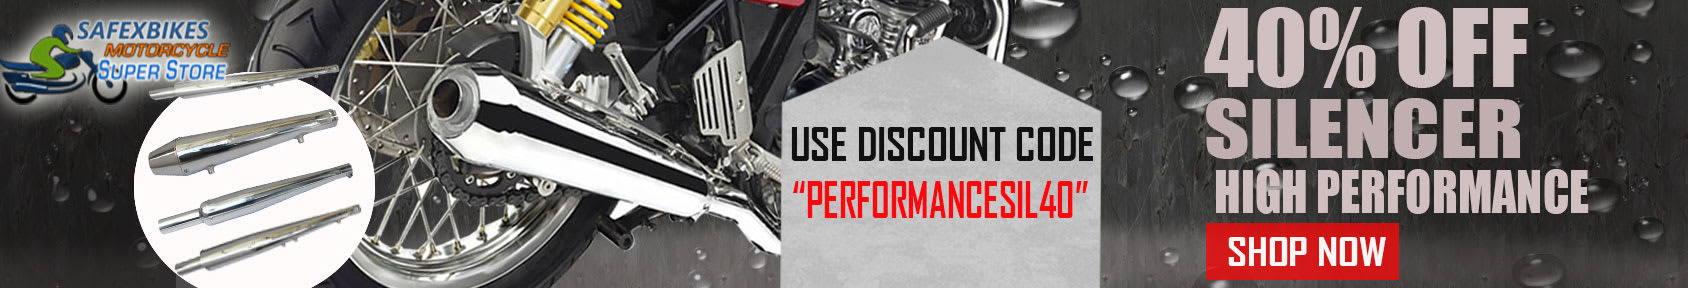 Special offers on Genuine Motorcycle Spare Parts And Accessories - Buy High performance Silencer get 40% discount